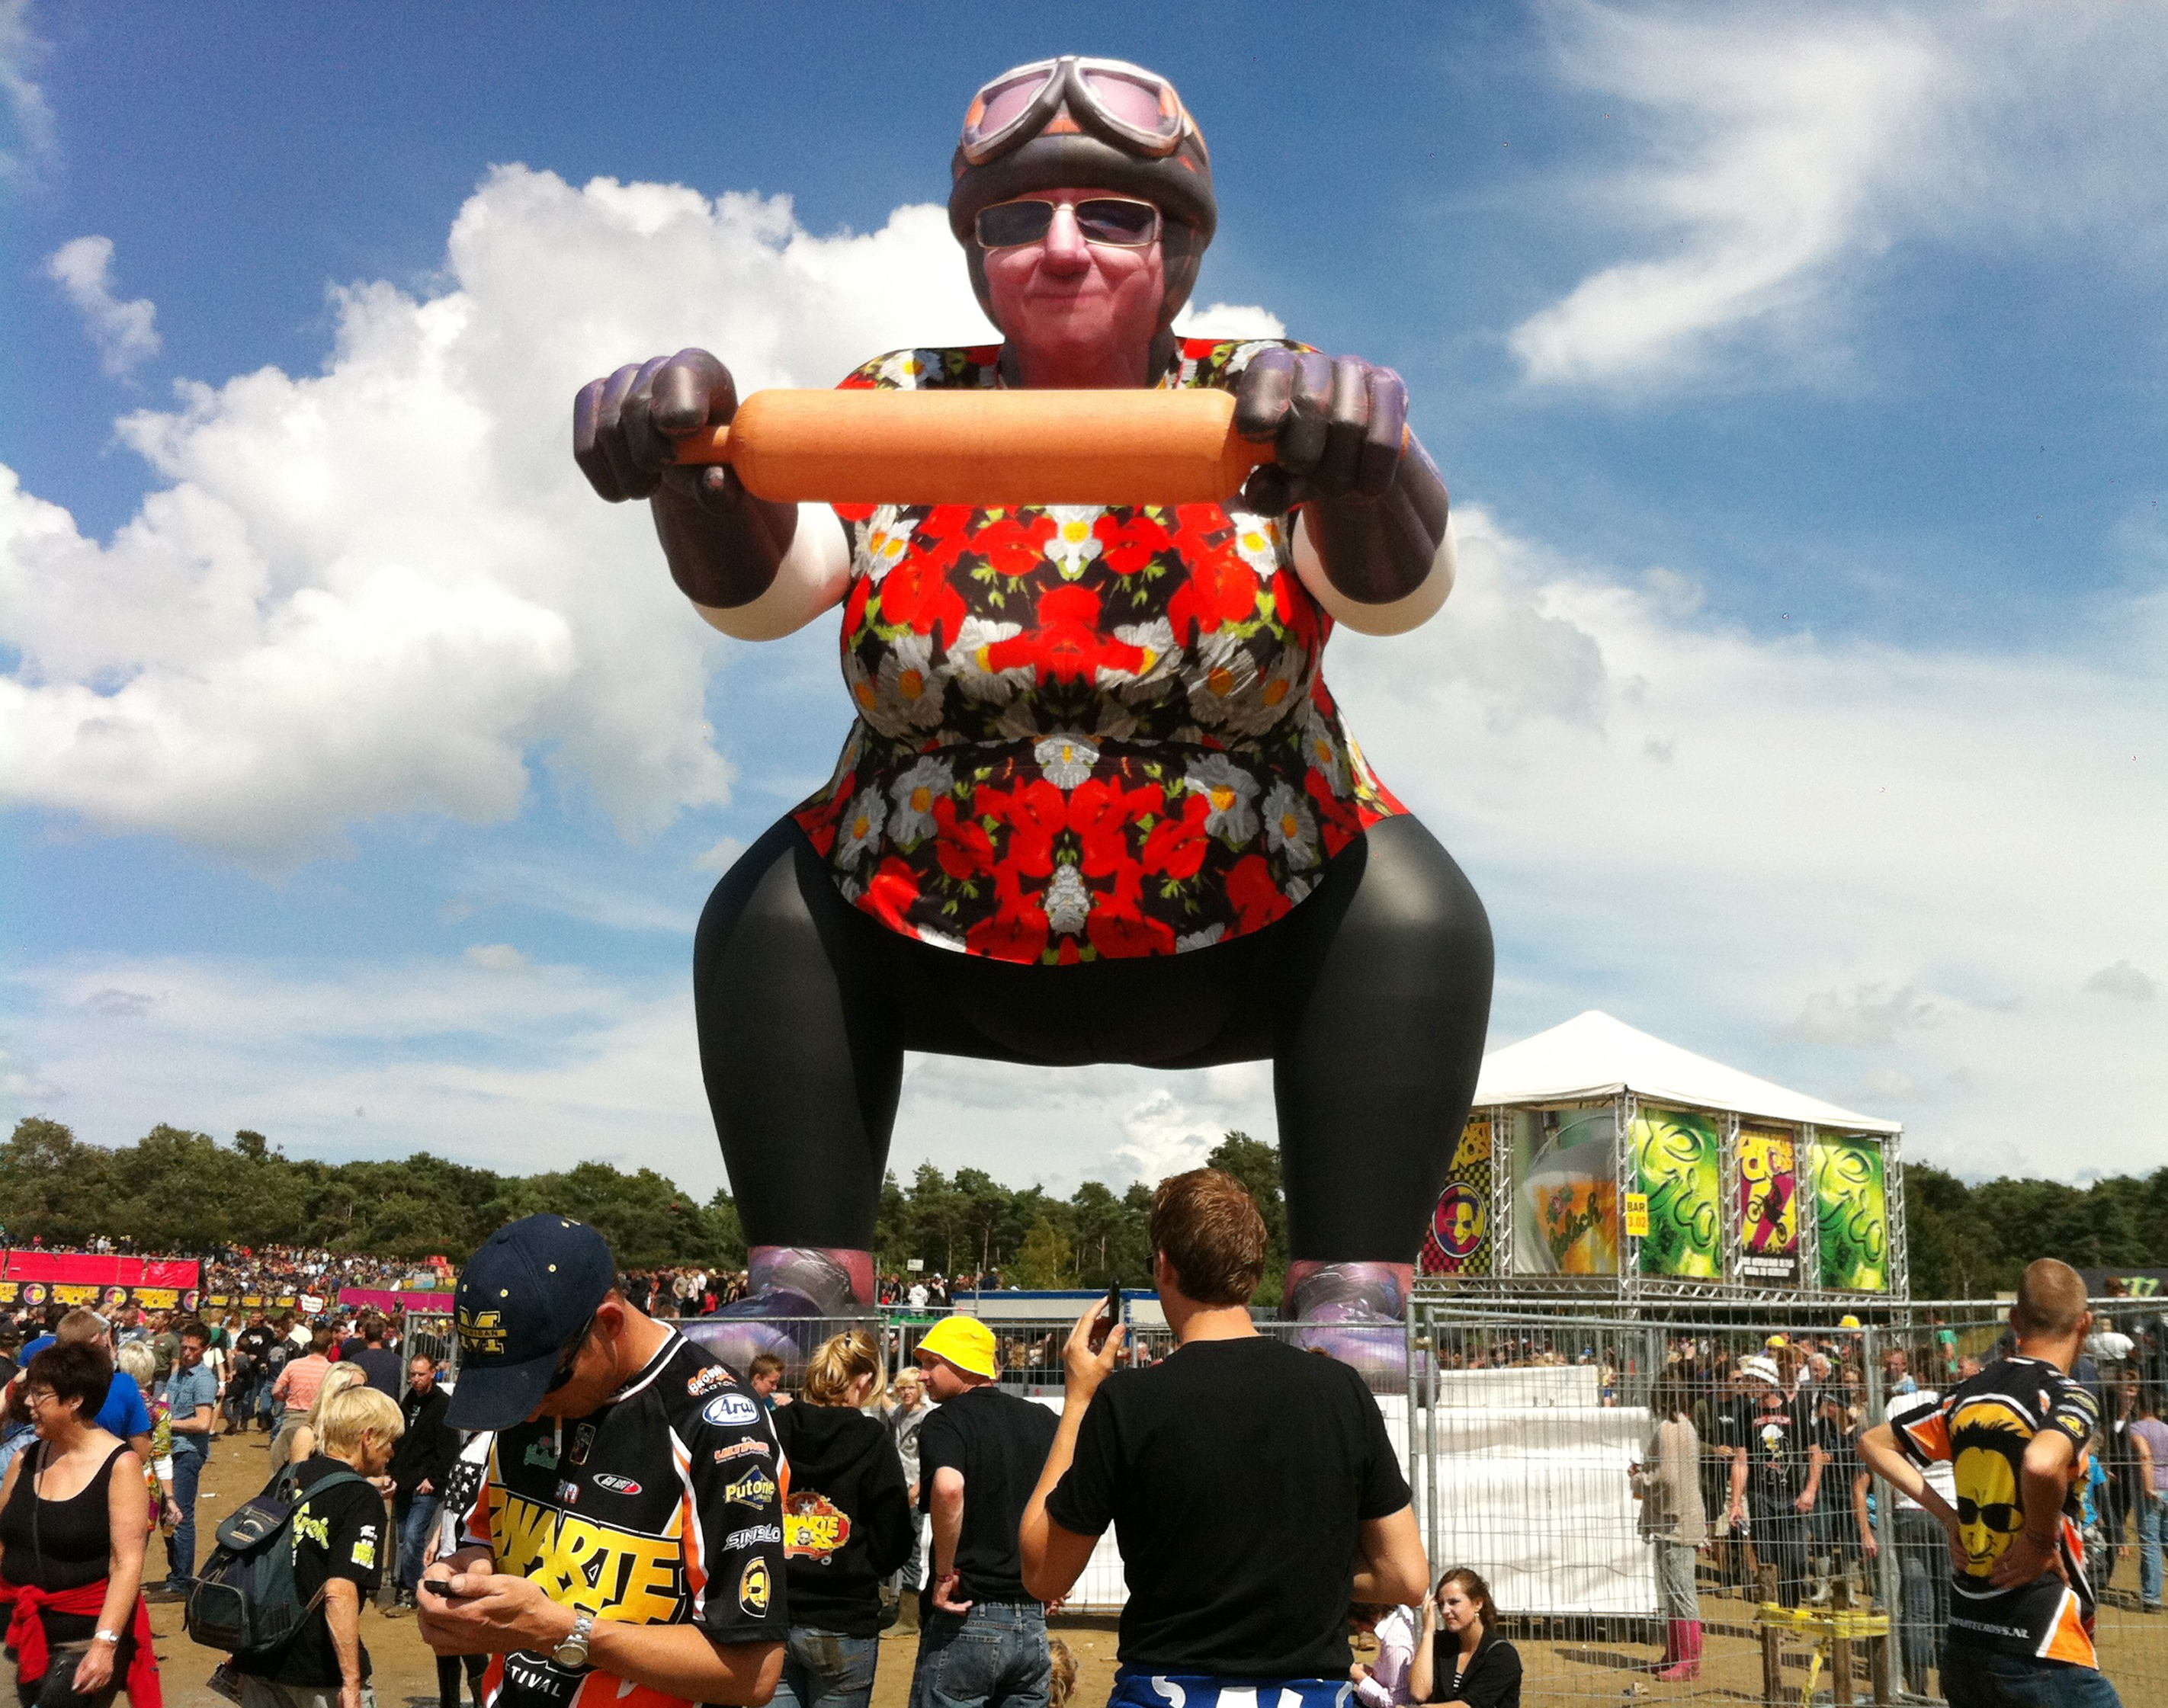 Giant inflatable Tante Rikie for Zwarte Cross music and motorcycle festival